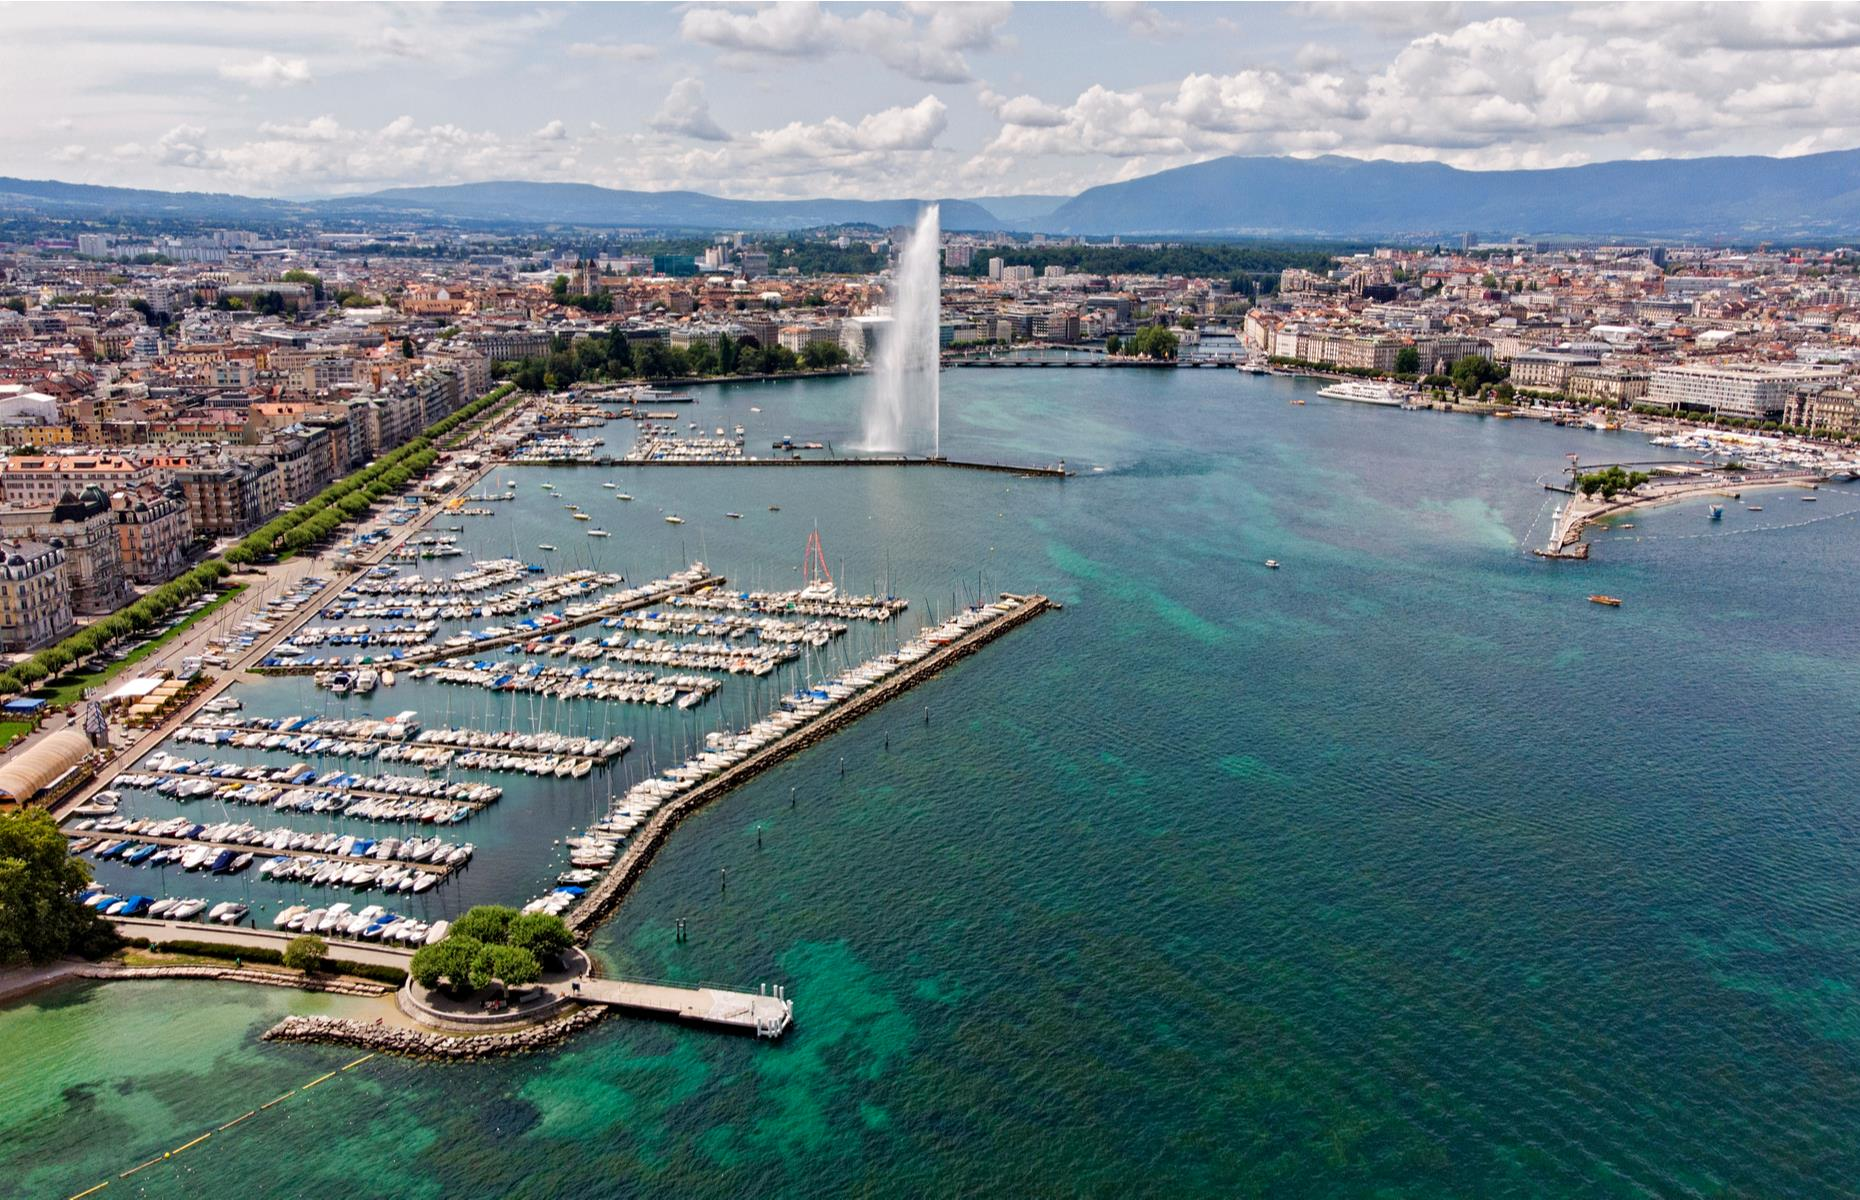 Slide 20 of 31: One of Geneva Harbour's most recognizable features is the 460-feet tall (140m) Jet d'Eau water jet that springs out from the lake and pumps out 500 liters (132 gallons) of water per second. Seen from above, the harbor filled with yachts and surrounded by stunning mountains is a sight to behold. Take a look at the world's most incredible photos from above.